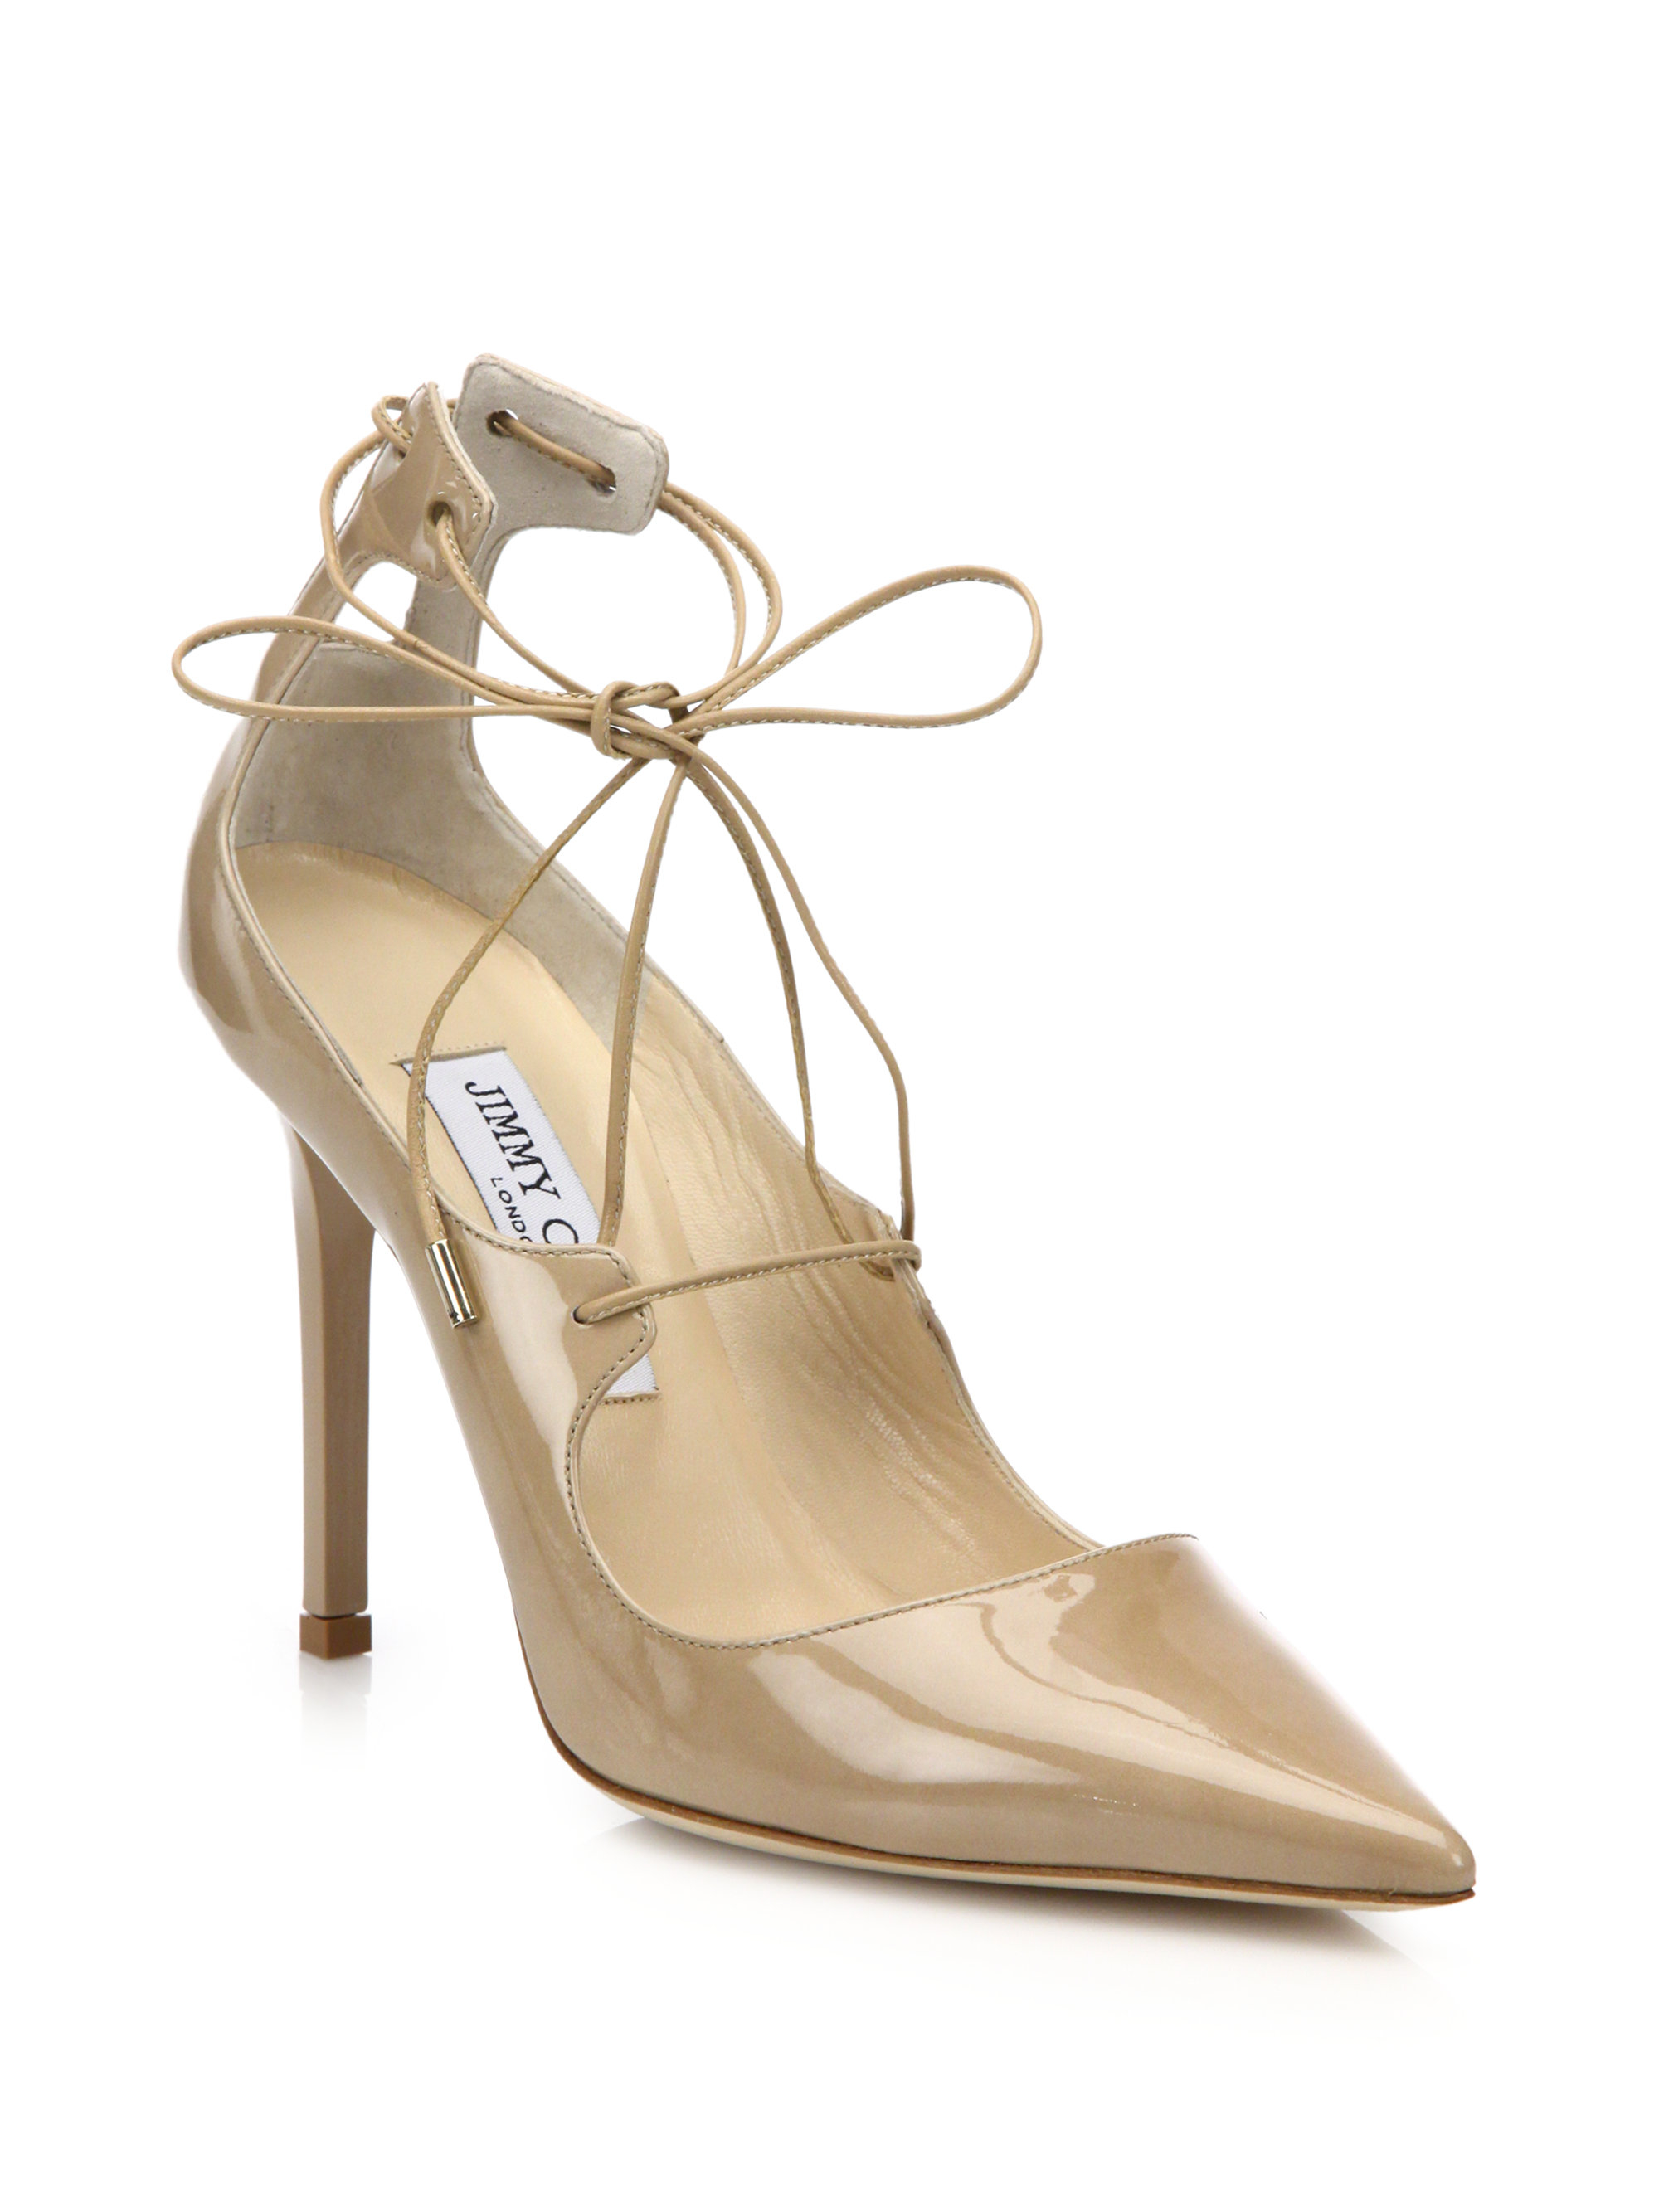 25f4d944937 Lyst - Jimmy Choo Vita Patent Leather Lace-up Pumps in Natural